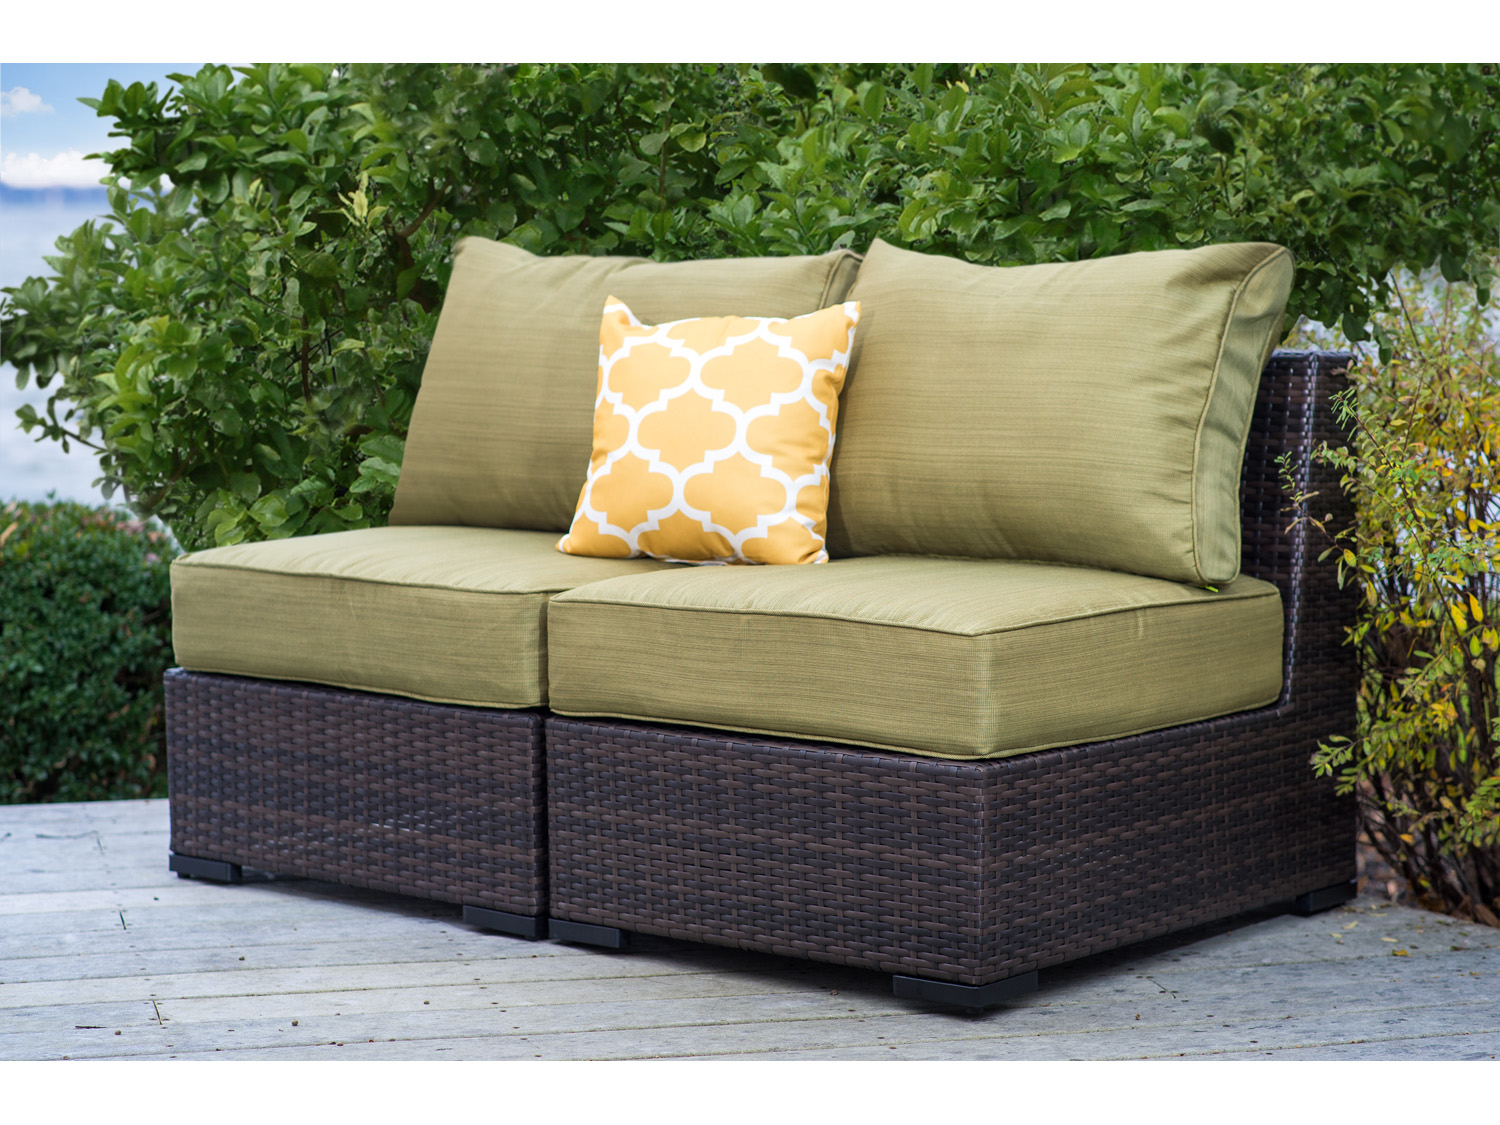 Vida Outdoor Pacific Armless Wicker Loveseat Palm Vd Pacific 2as Palm